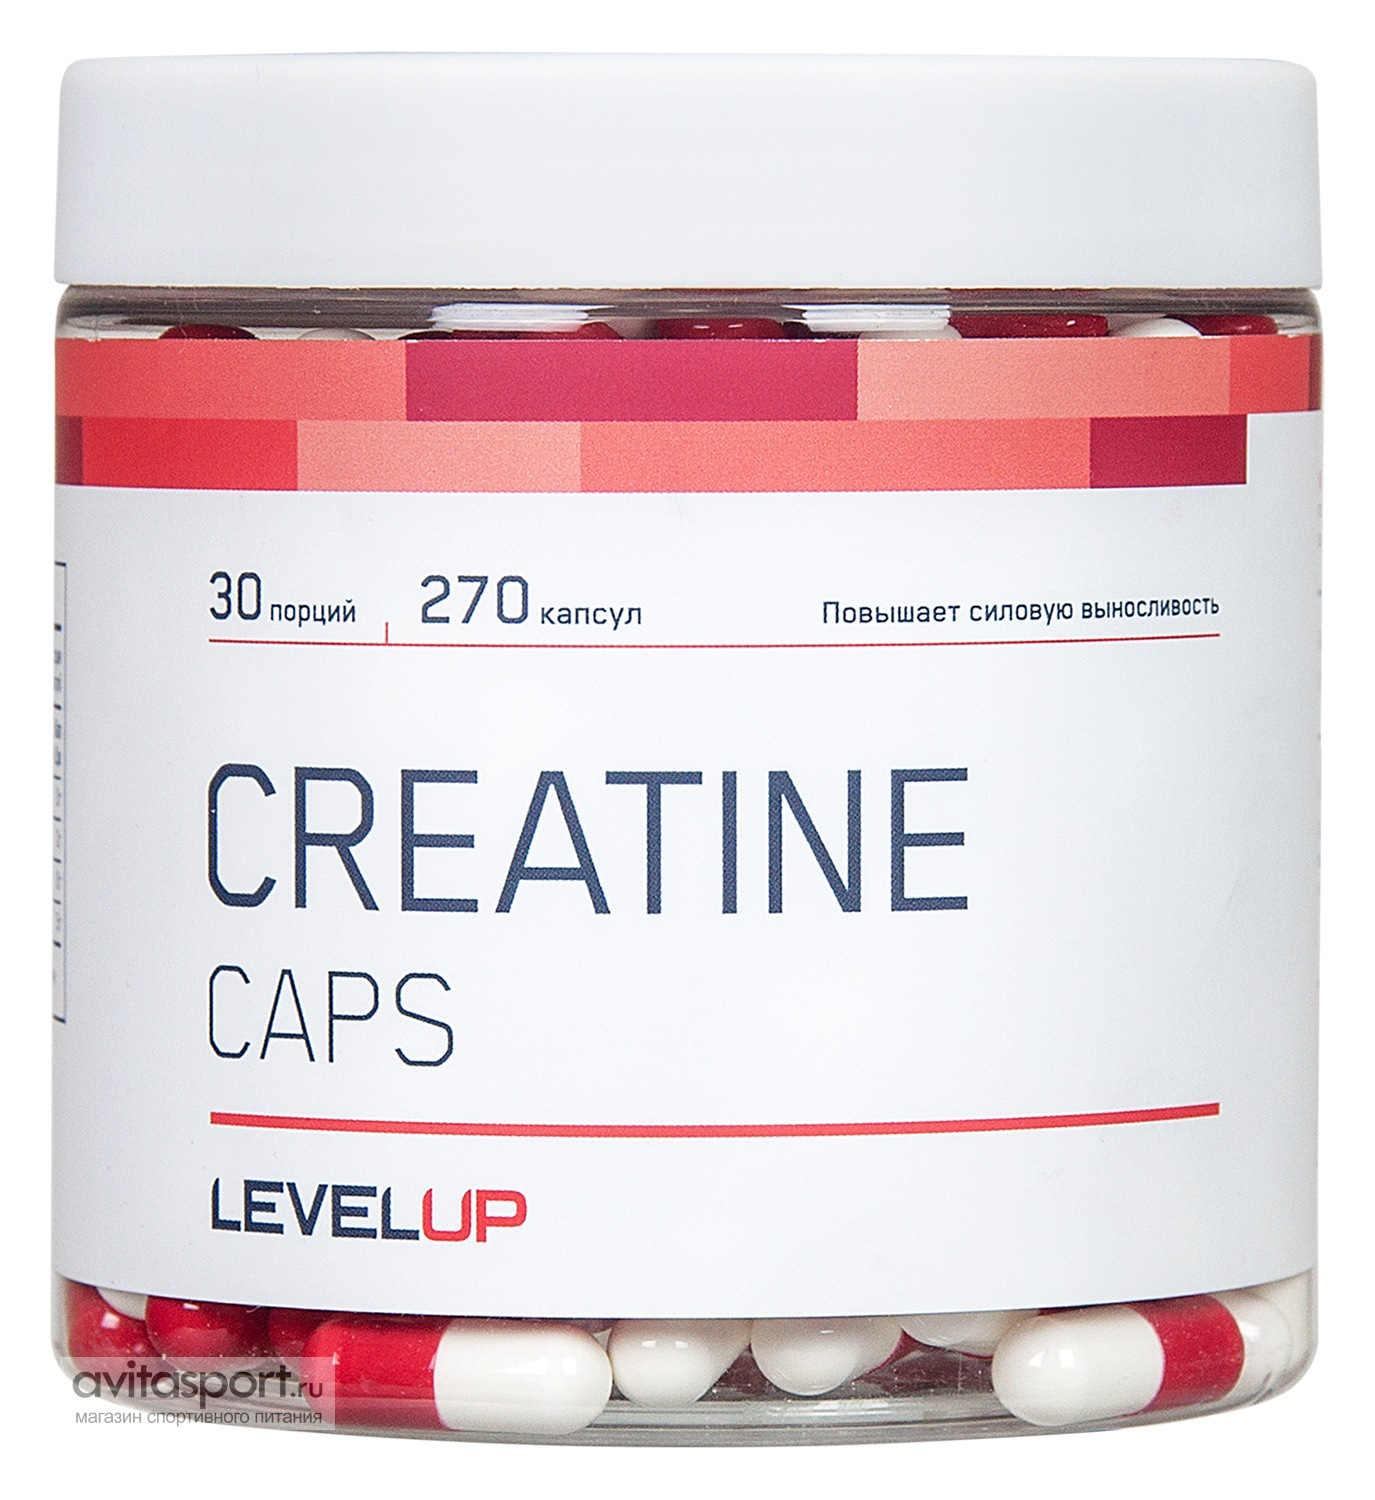 LevelUp Creatine Caps 270 капсул